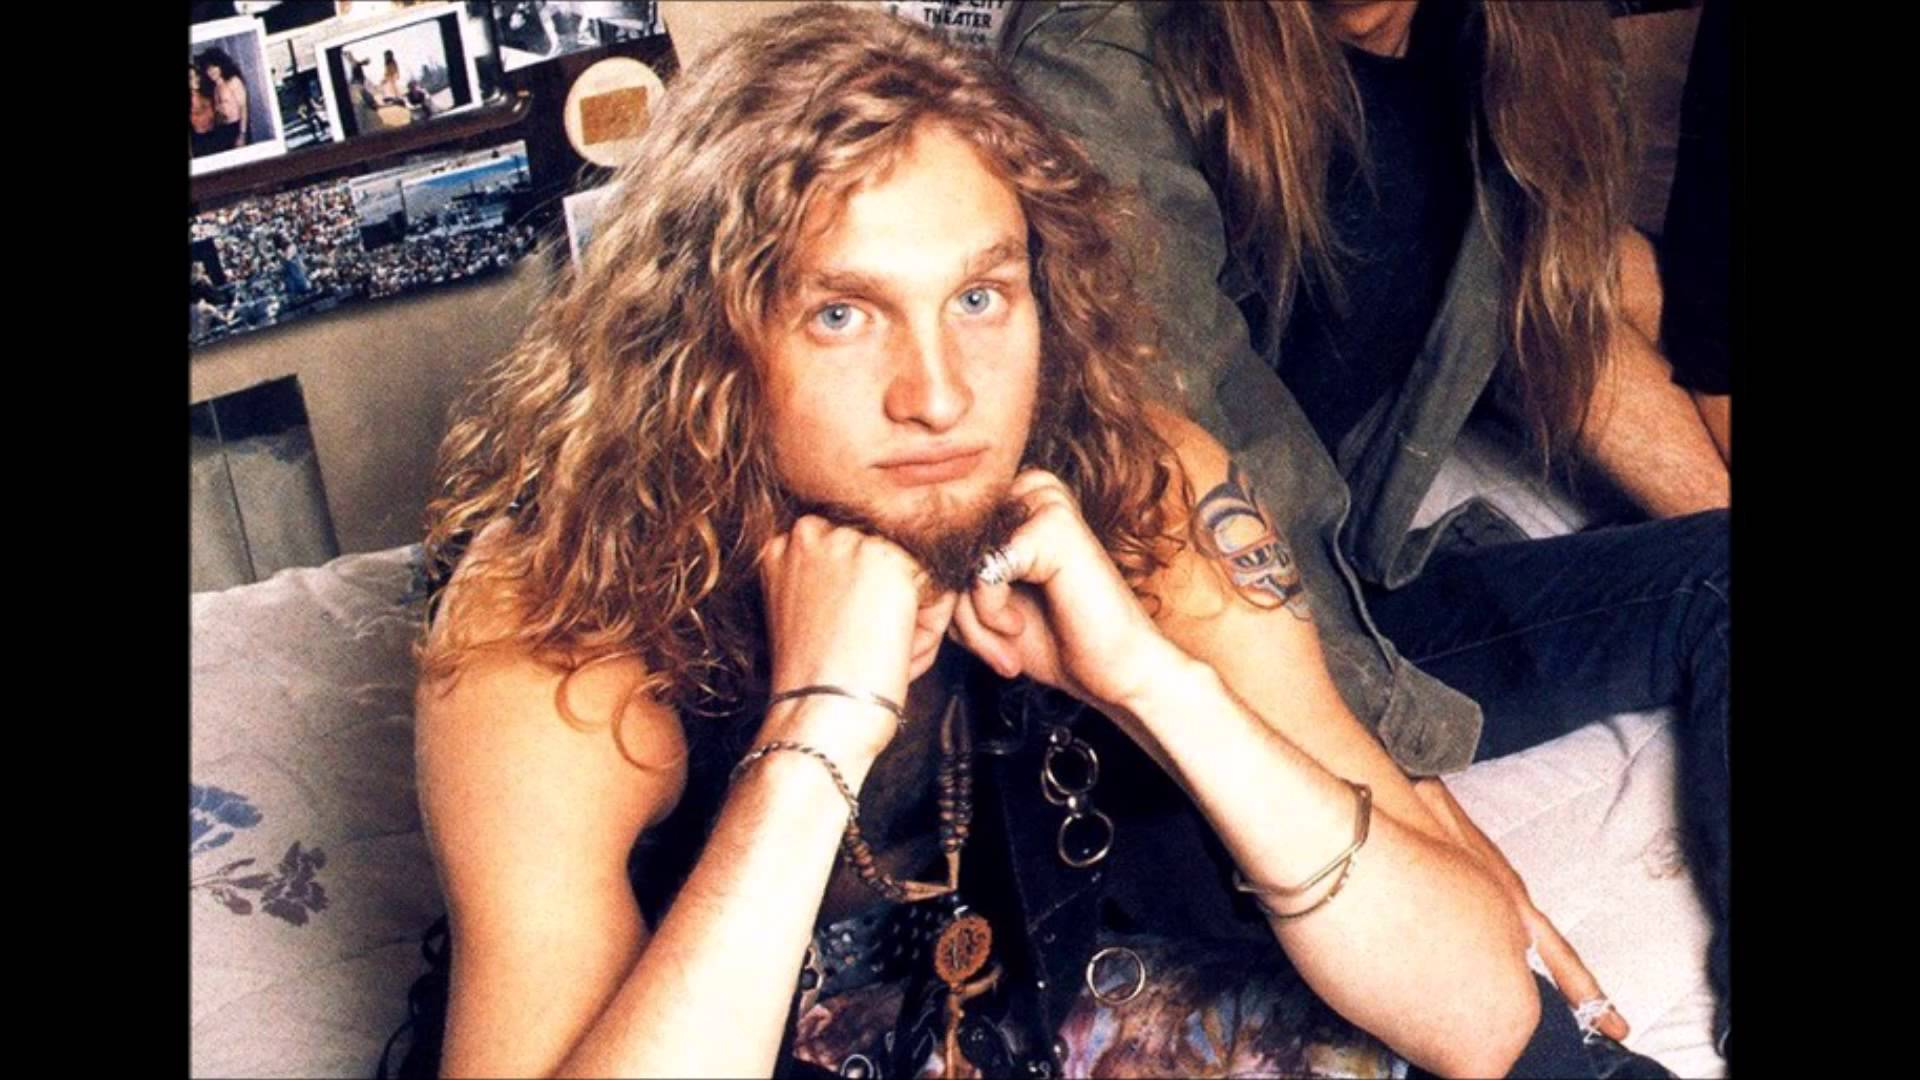 1920x1080 > Layne Staley Wallpapers